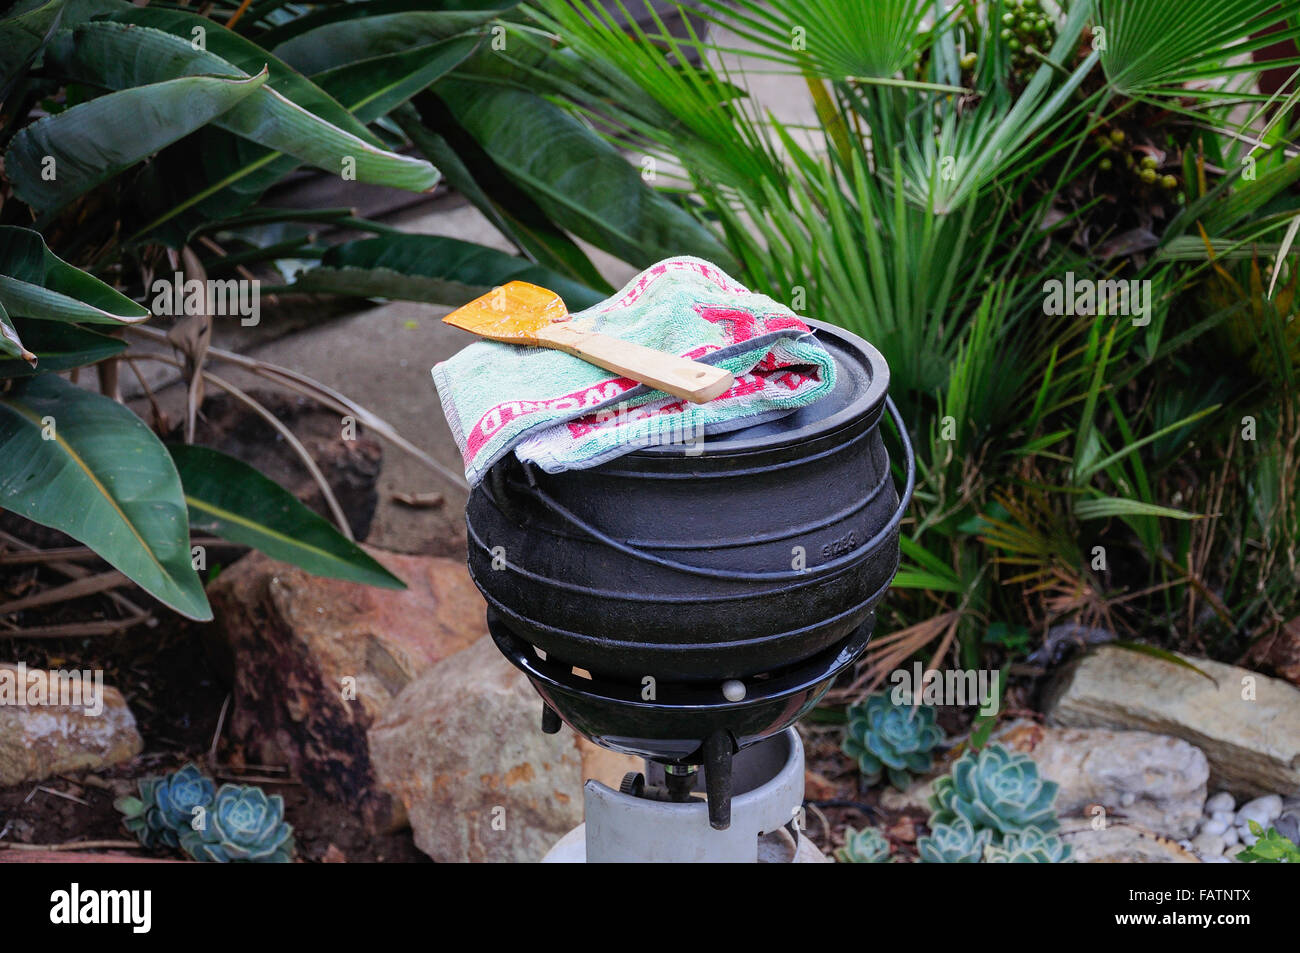 Traditional potjie cooking pot, Springs, Johannesburg, Gauteng Province, Republic of South Africa - Stock Image